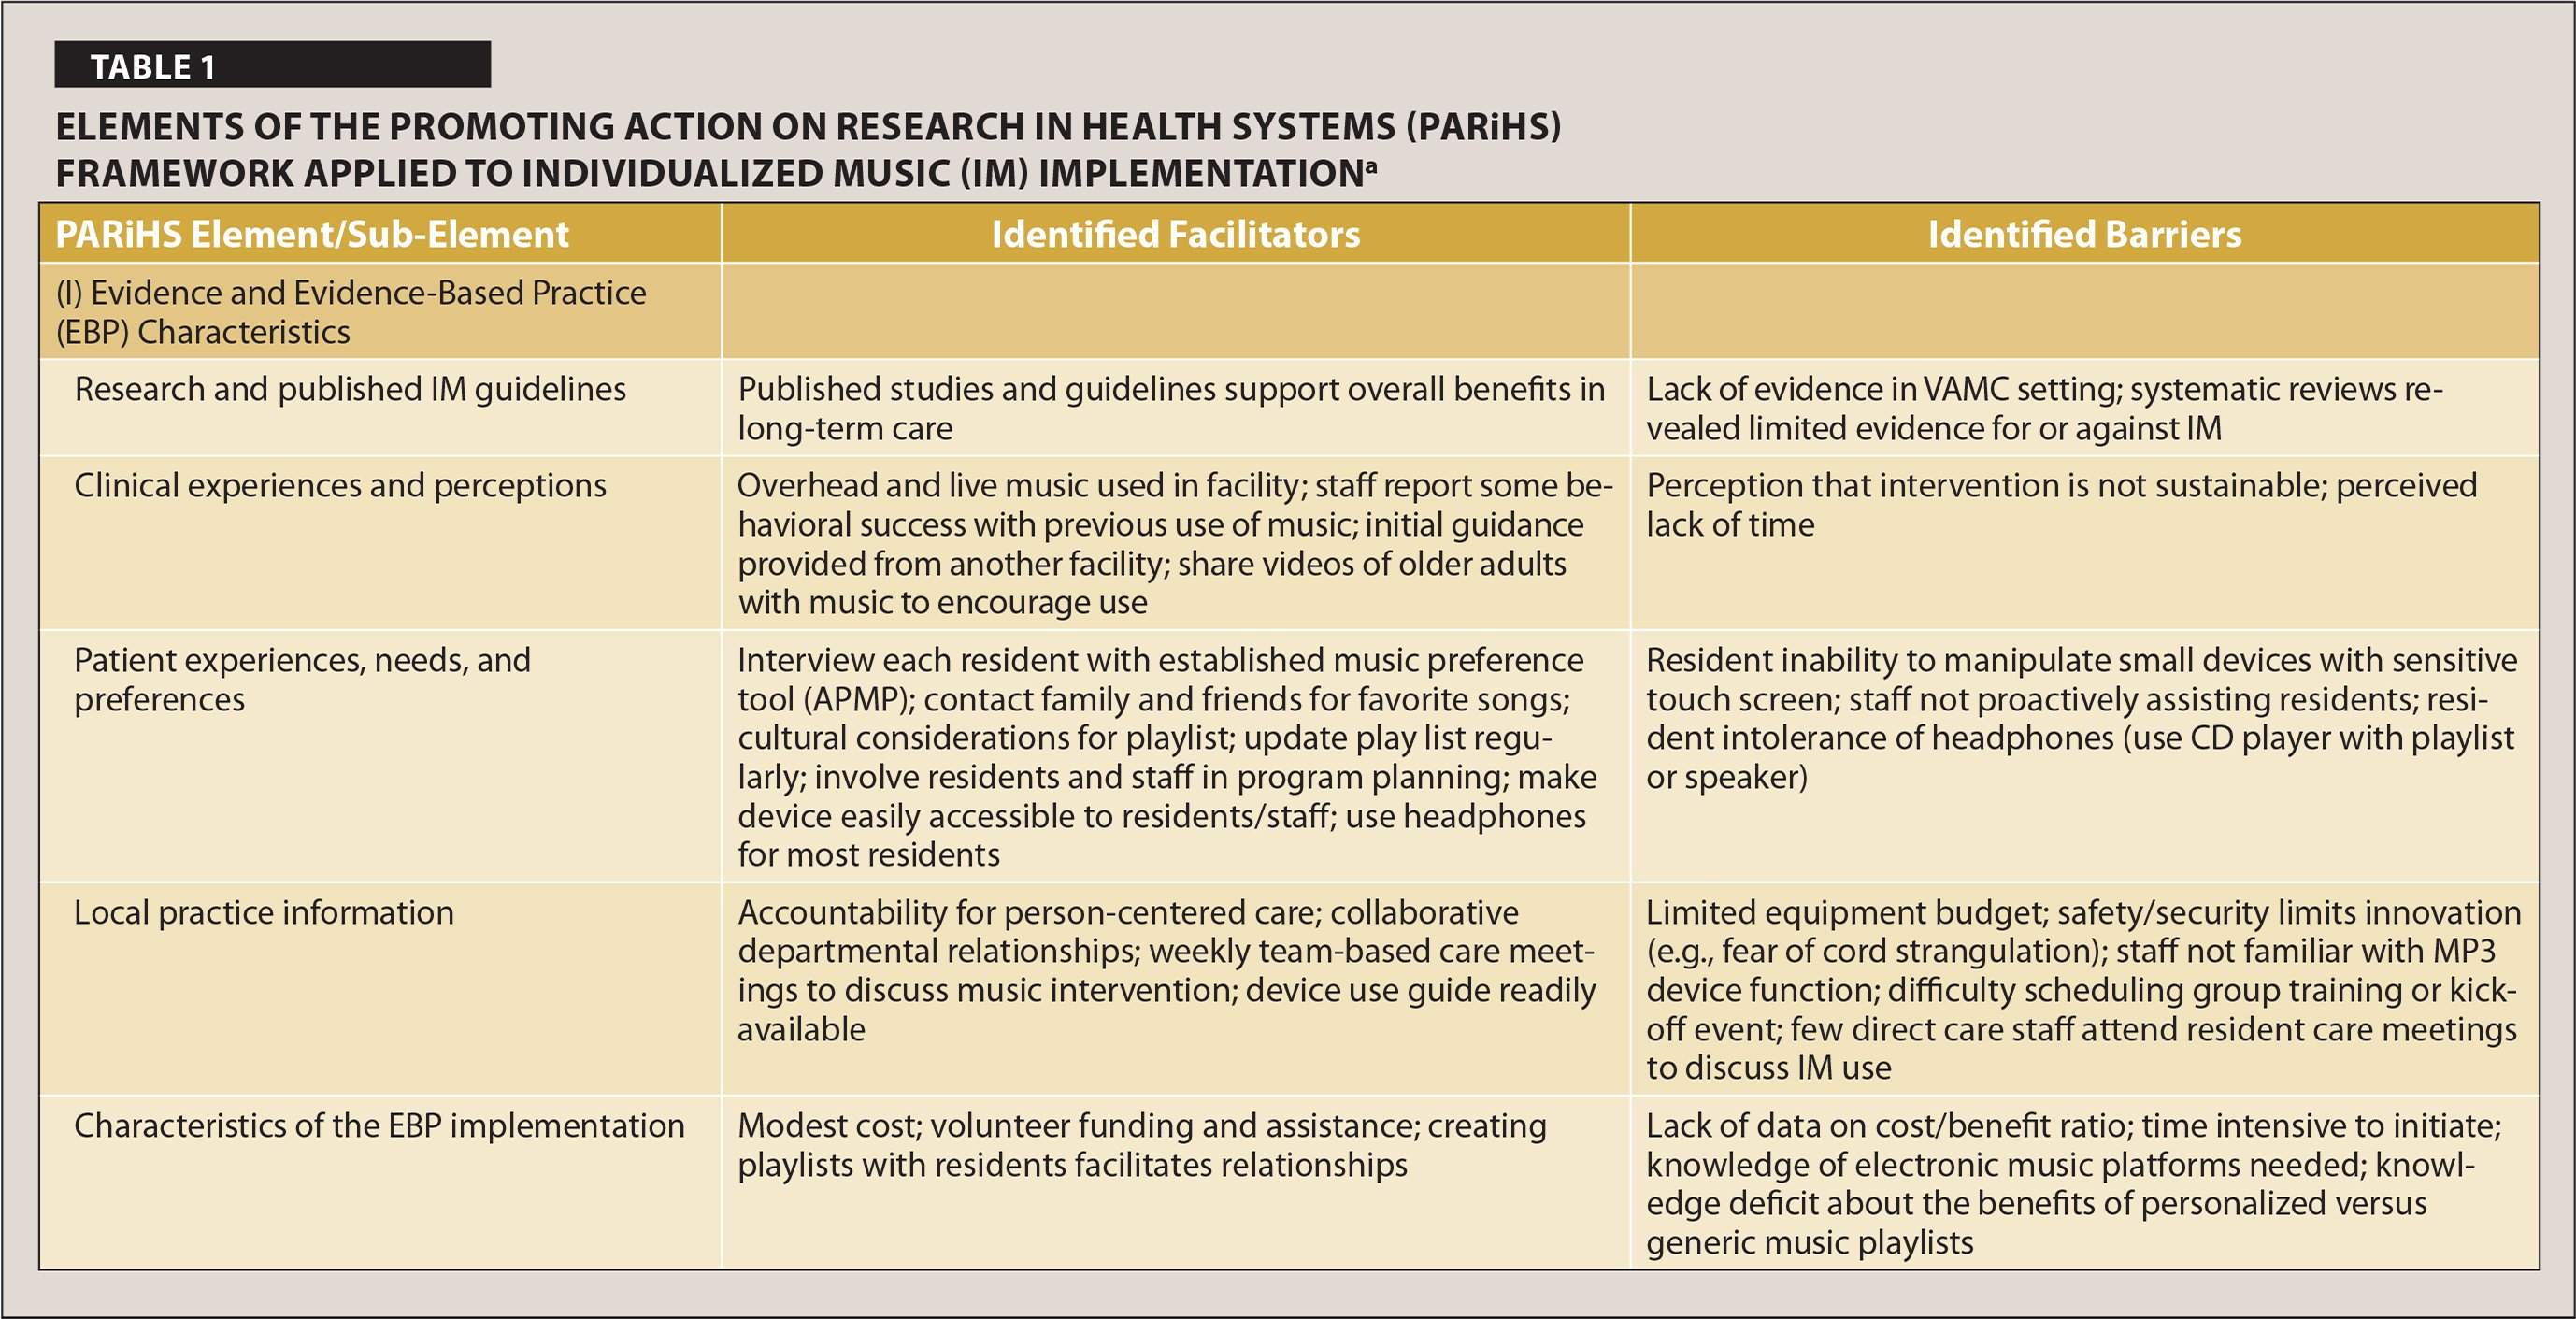 Elements of the Promoting Action on Research in Health Systems (PARiHS) Framework Applied to Individualized Music (IM) Implementationa